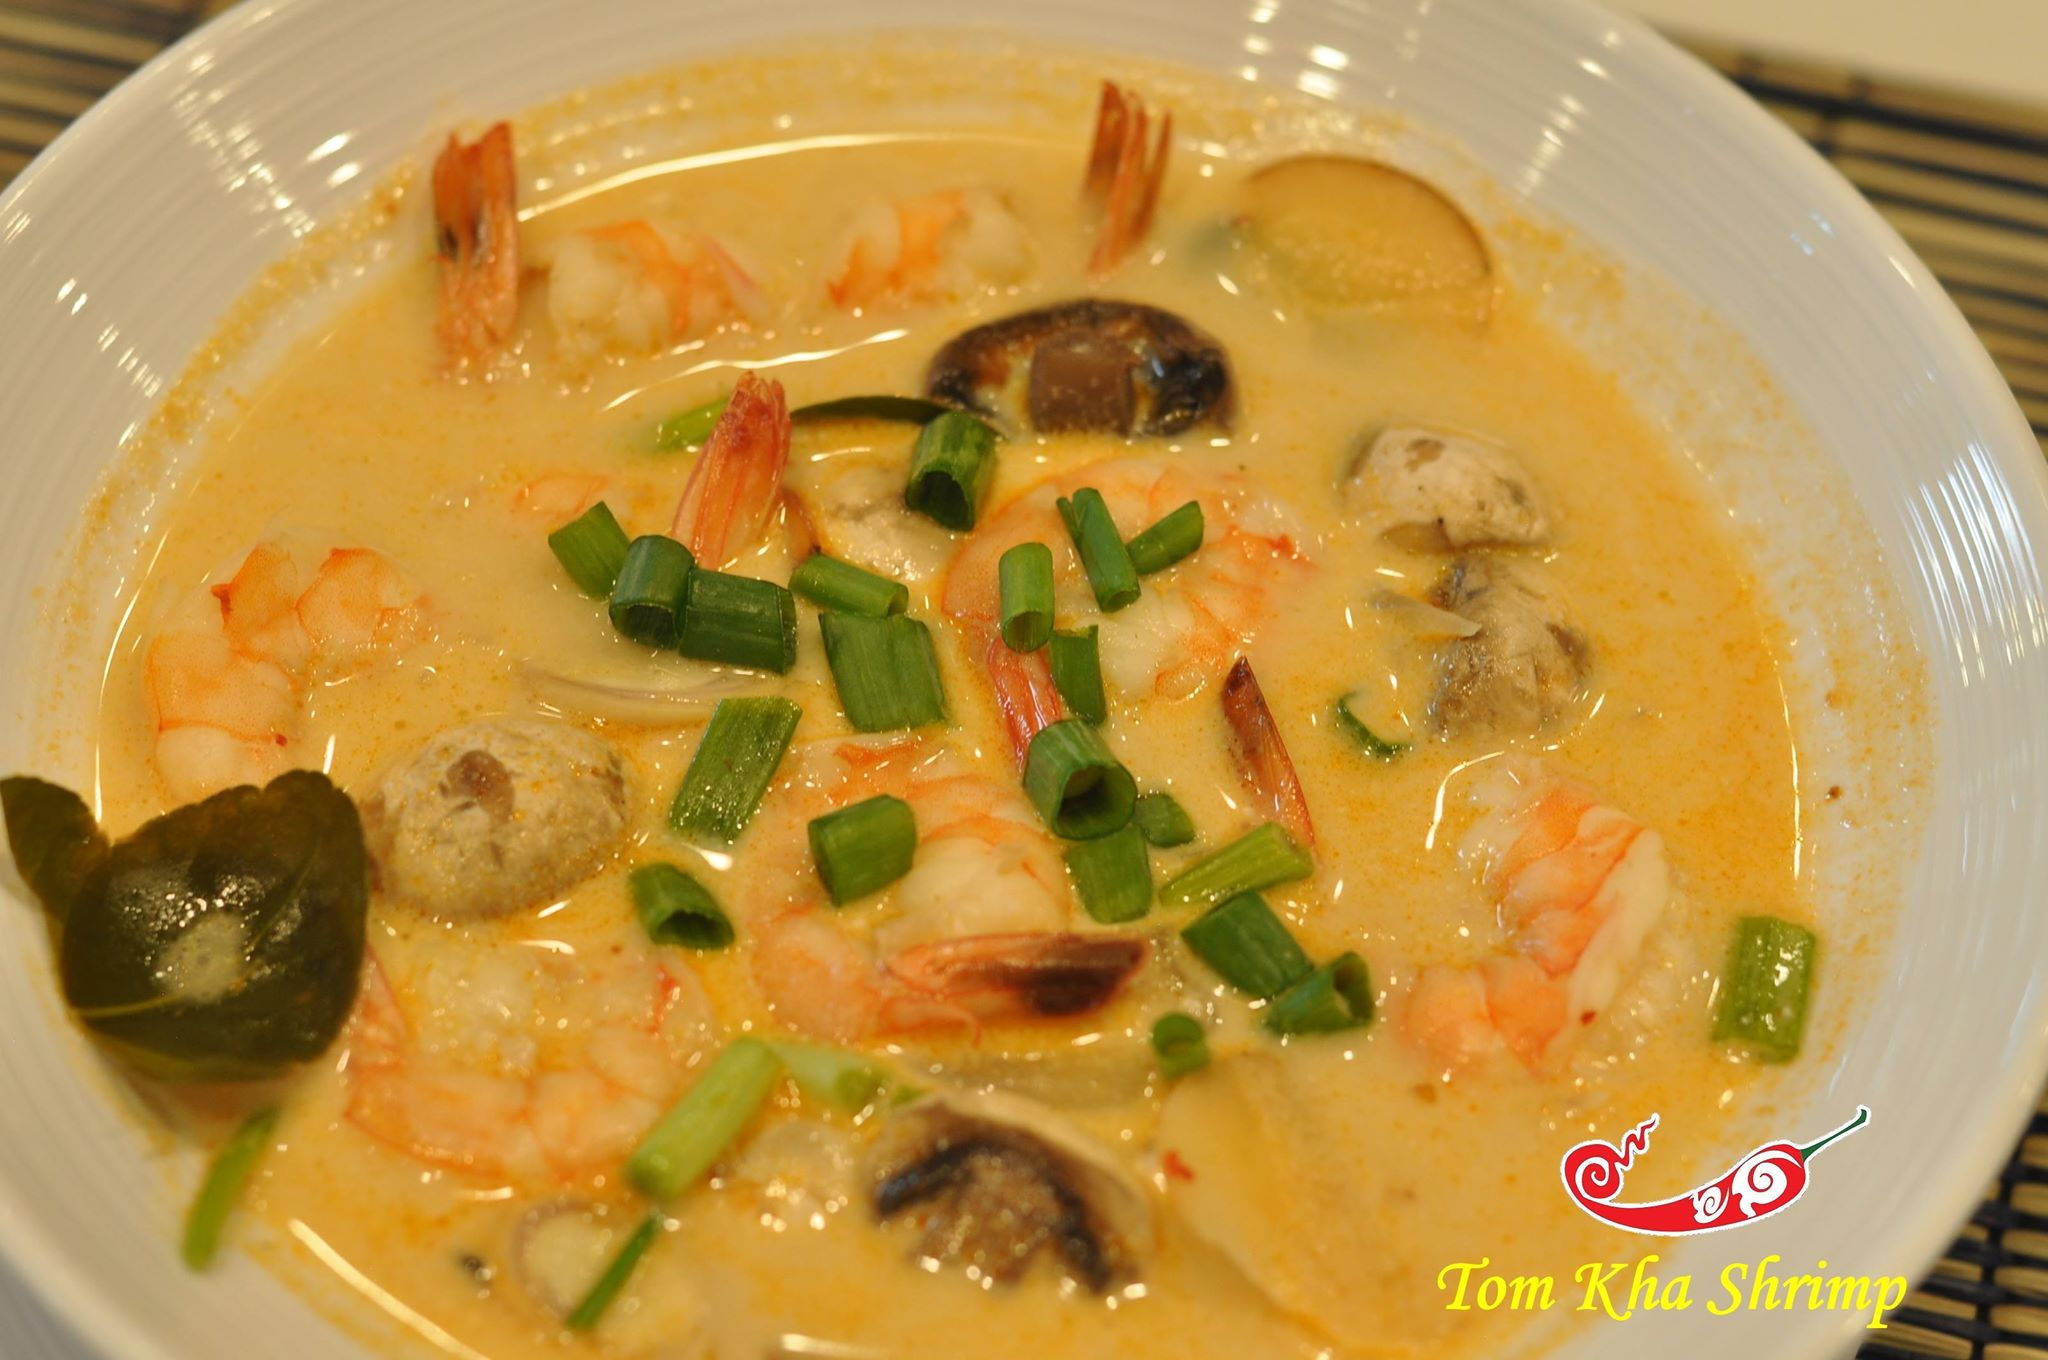 Tom Kha Soup (Catering) Image